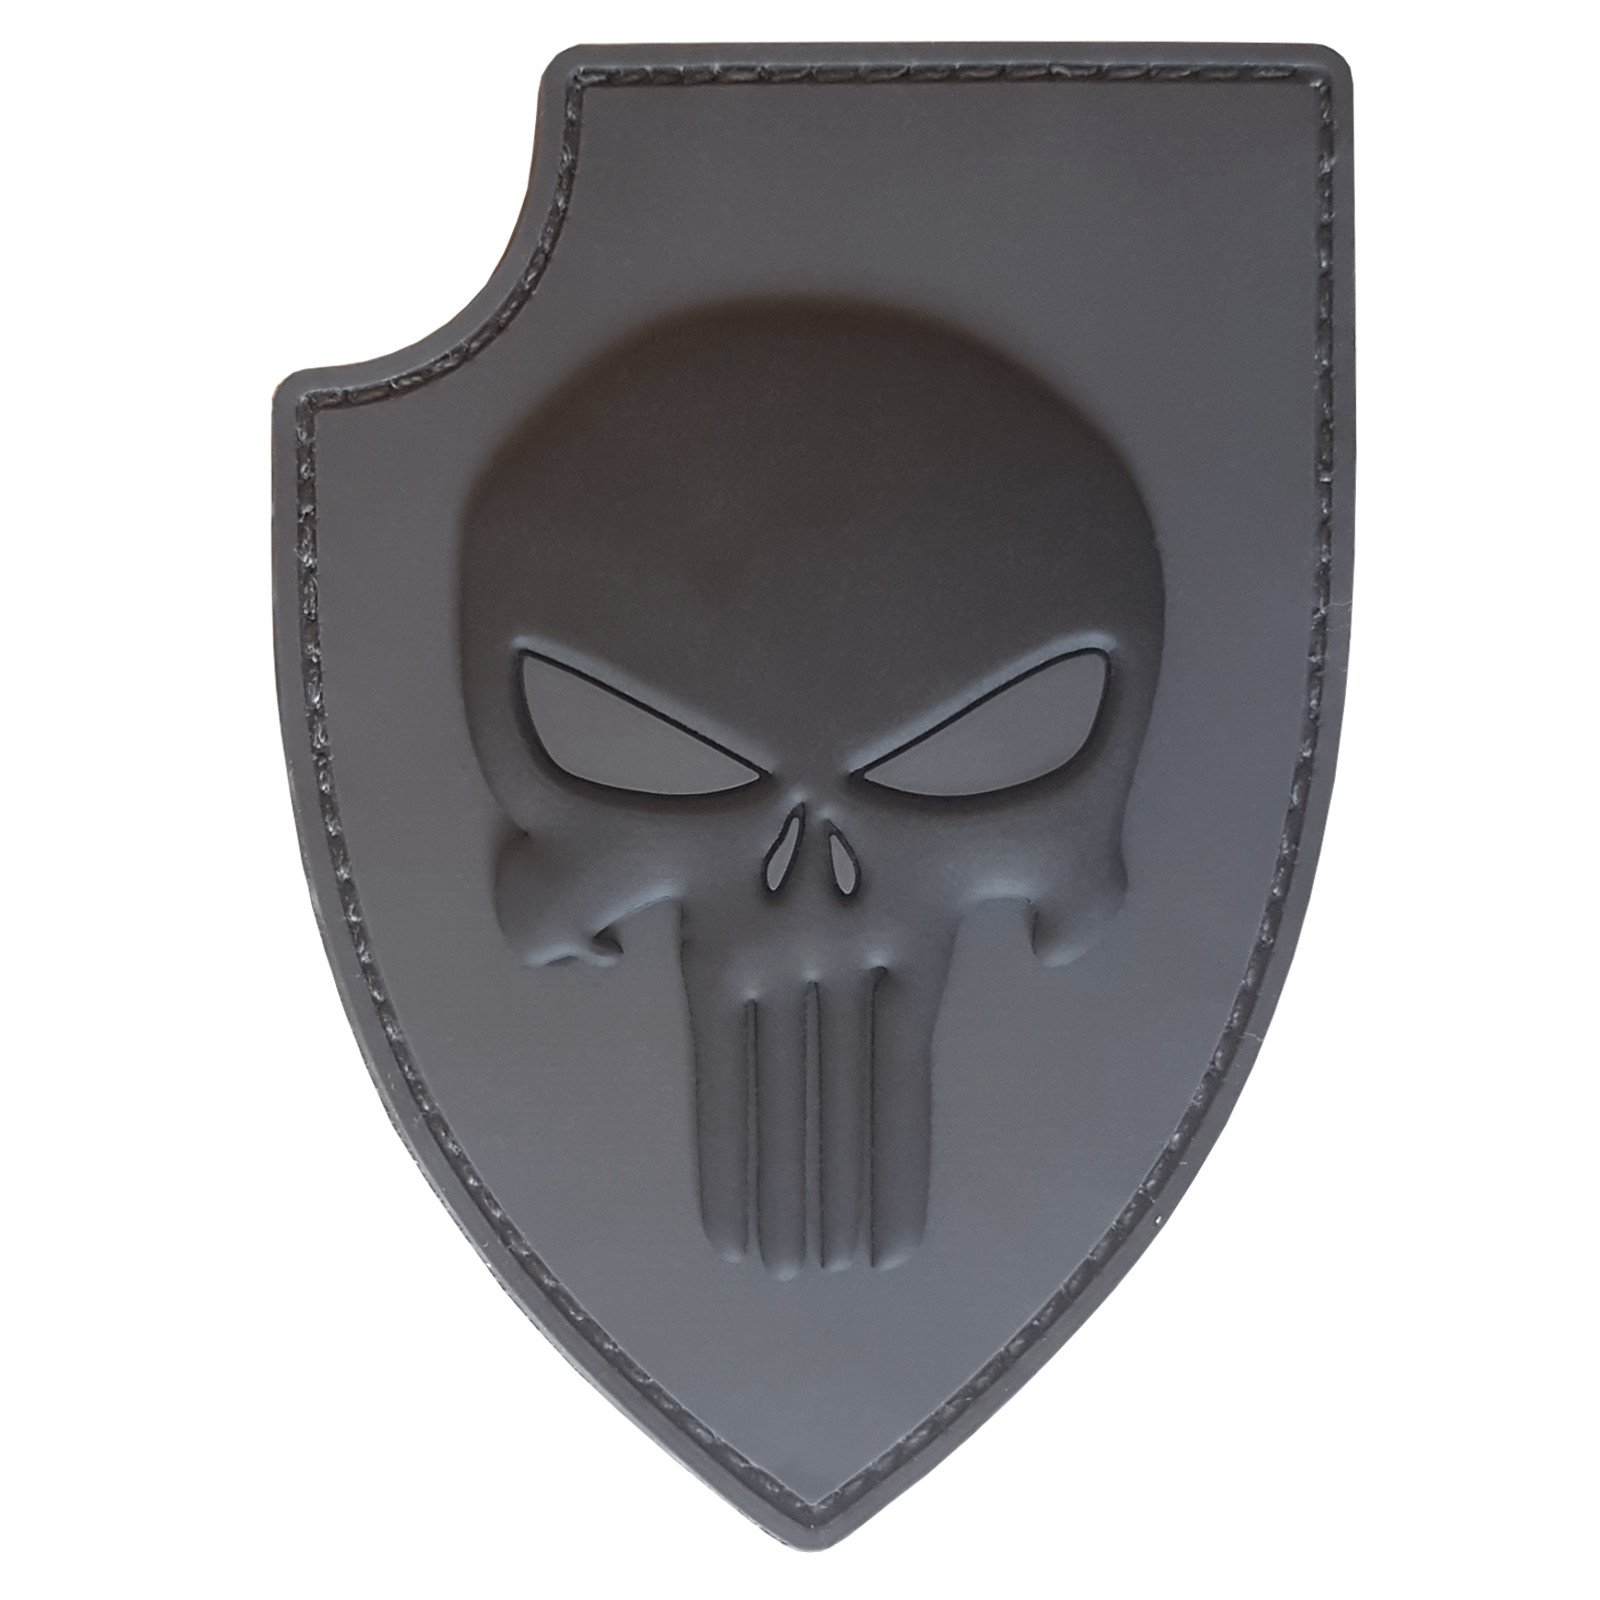 ACU Gray PVC 3D Rubber Punisher Skull USA Sealteam DEVGRU Glow Dark Velcro Patch